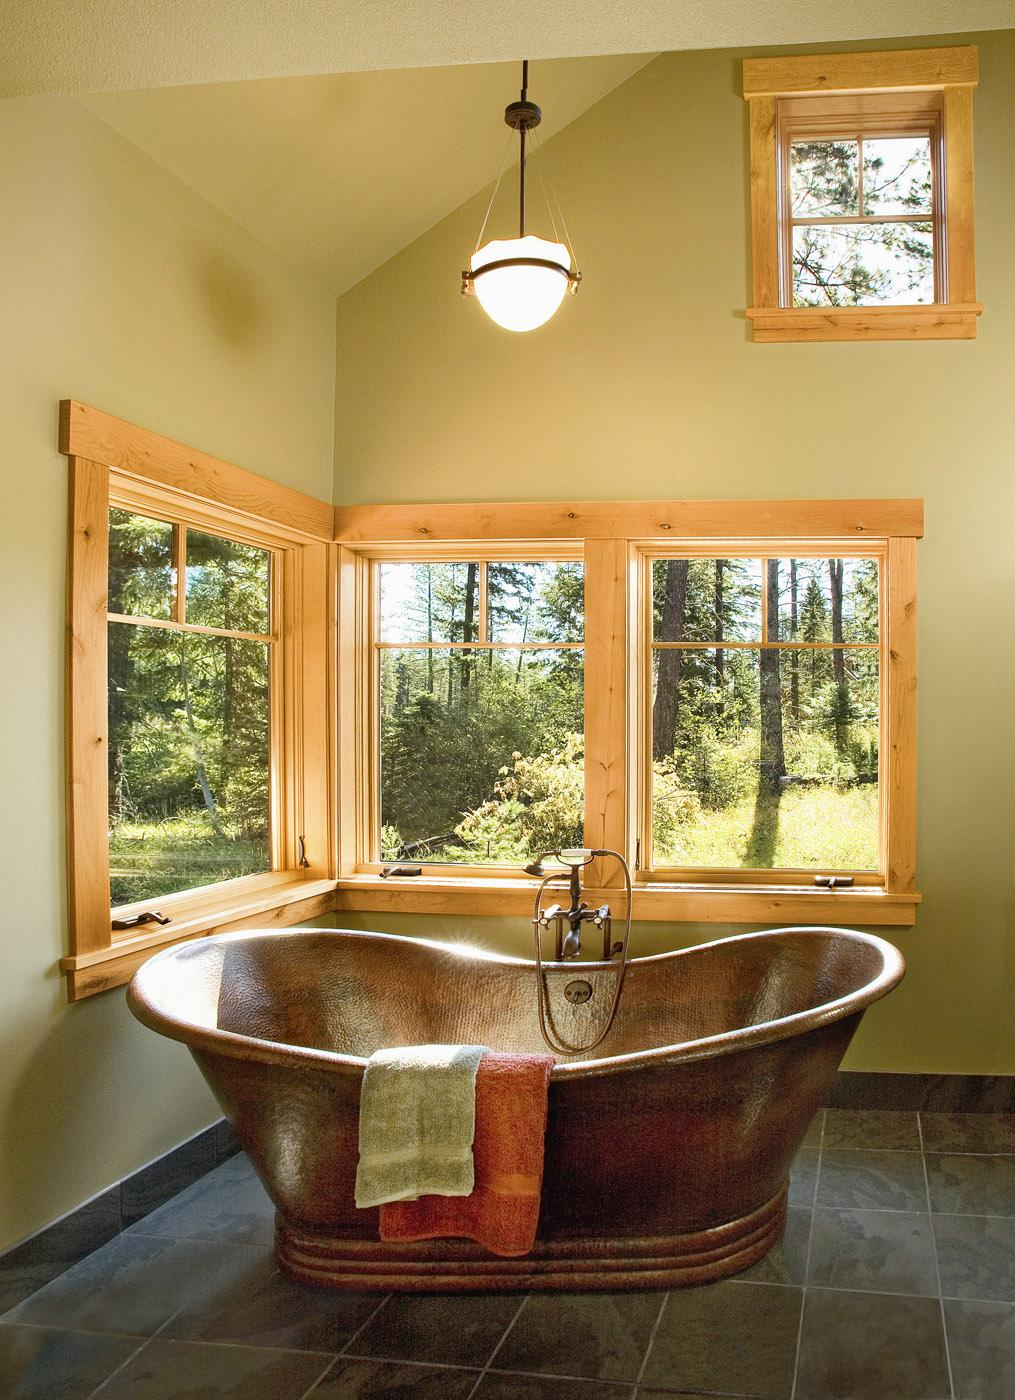 Forest certification indicates that forests have passed certain evaluations to ensure the more sustainable production of consumptive and non-consumptive forest products. Jeld-Wen, manufacturer of windows and doors, offers certification for their many products, including the ones pictured here. (Photo courtesy of Jeld-Wen)